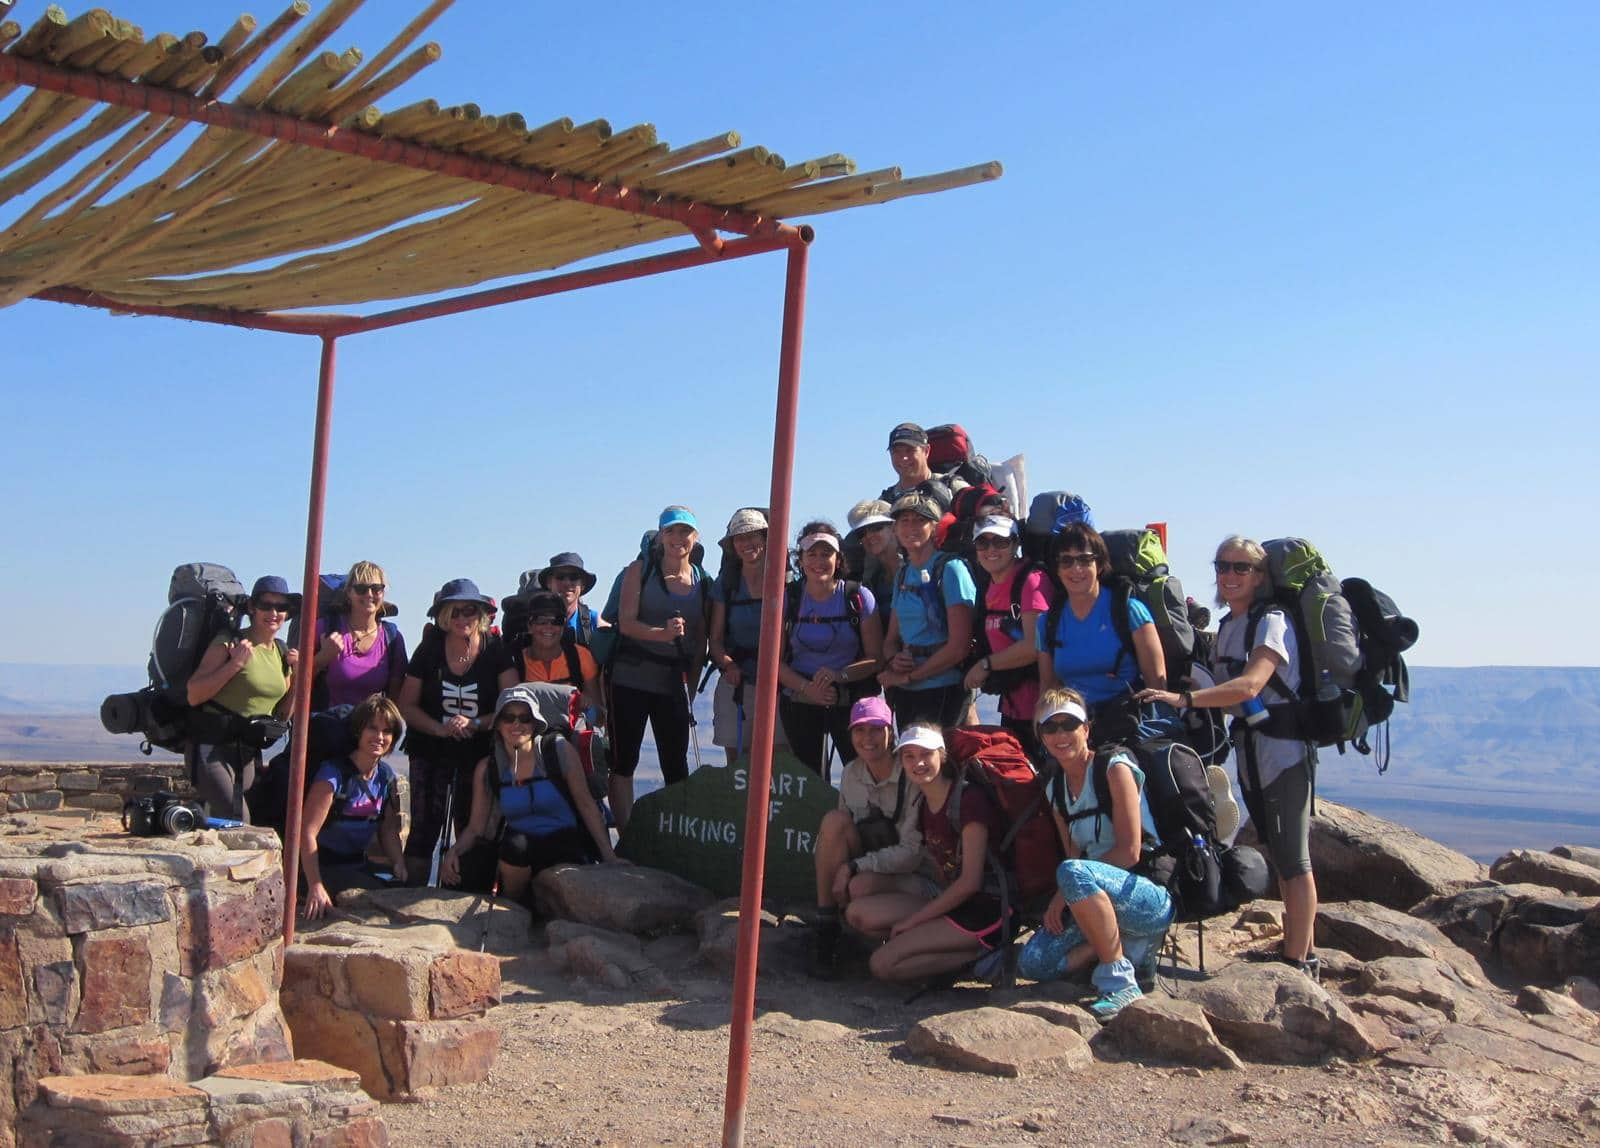 Our group at the starting point.